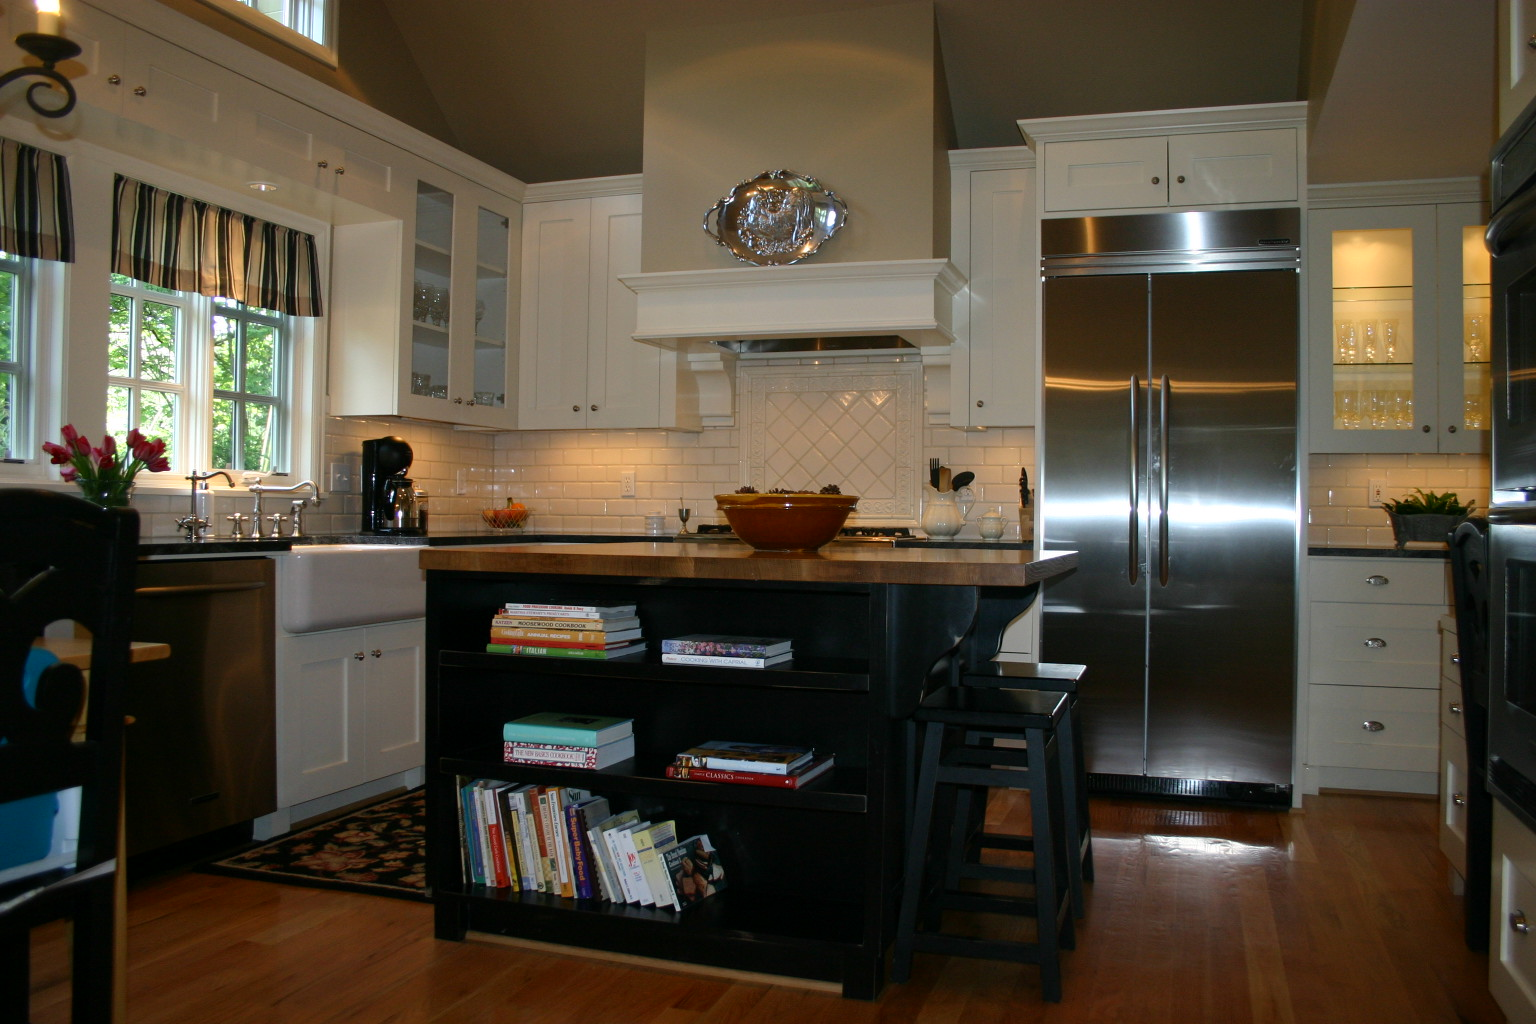 Kitchen, Countertops, Kitchen Island, Bookshelves, Remodel, kitchen, home renovation, Portland, Oregon, Kaya Construction, Kaya General Contractors, Portland Remodeler